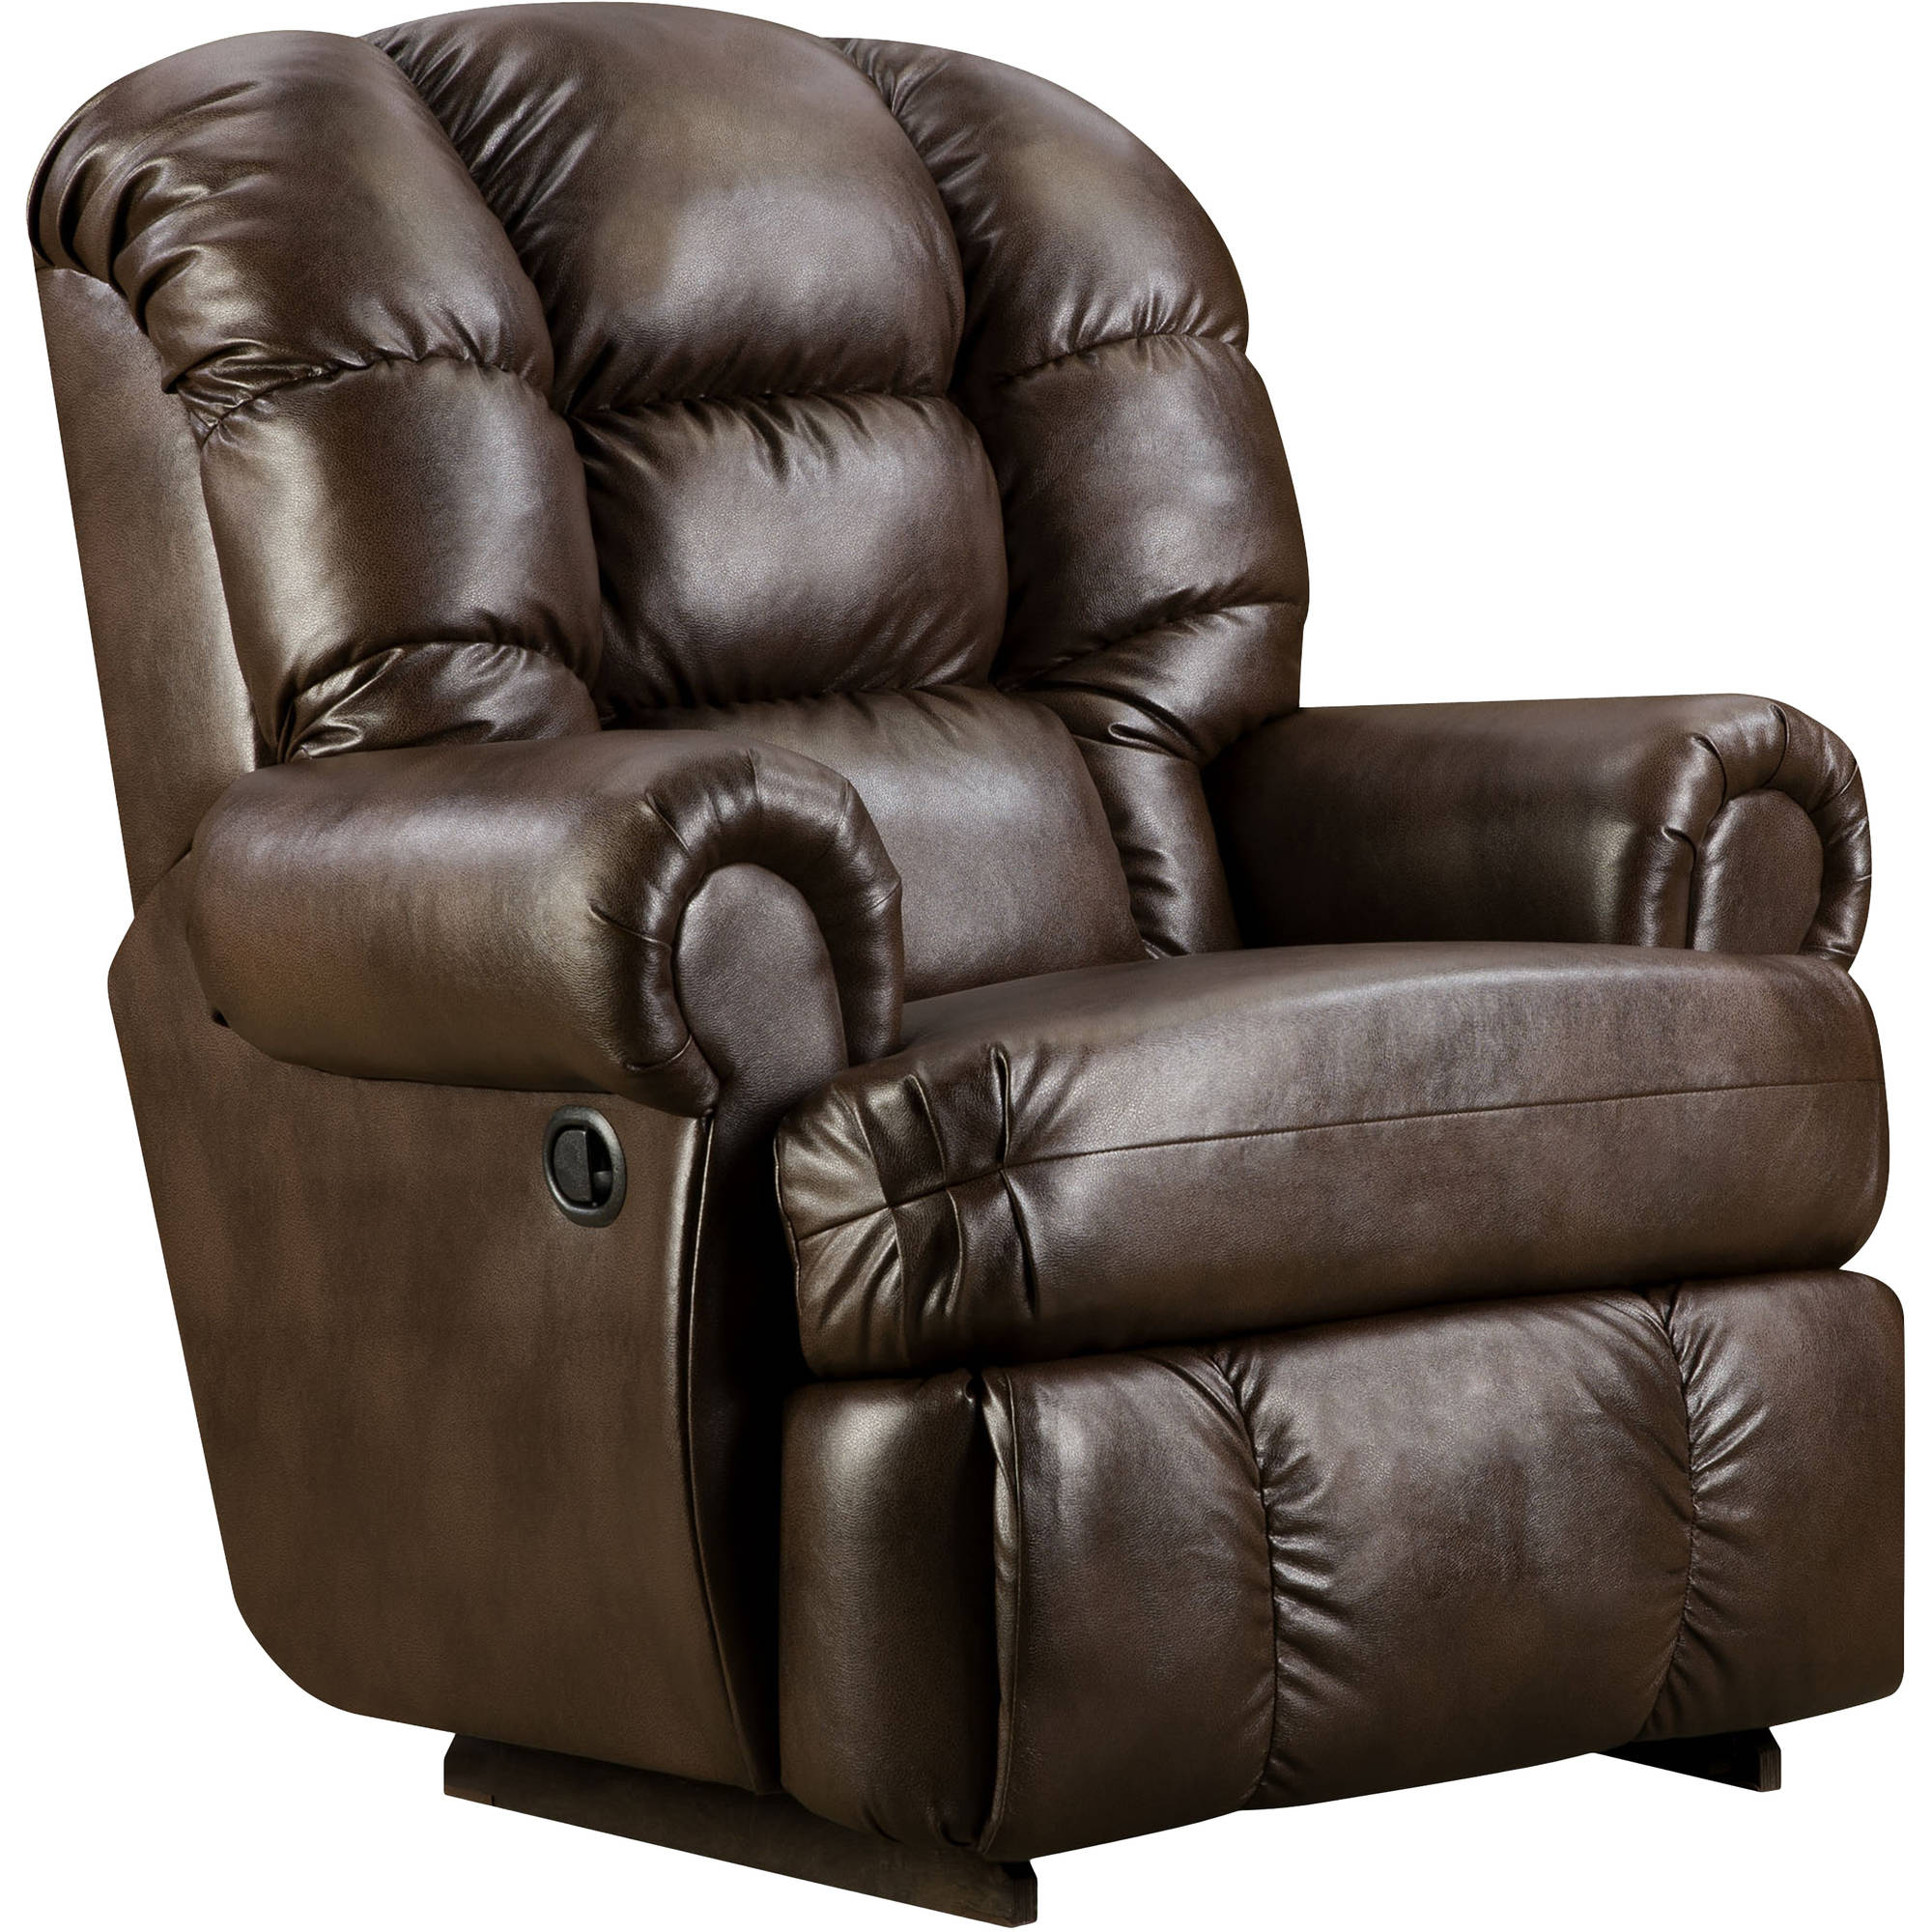 Capacity Loggins Espresso Leather Recliner  sc 1 st  Walmart & Flash Furniture Big and Tall 350 lb. Capacity Loggins Espresso ... islam-shia.org